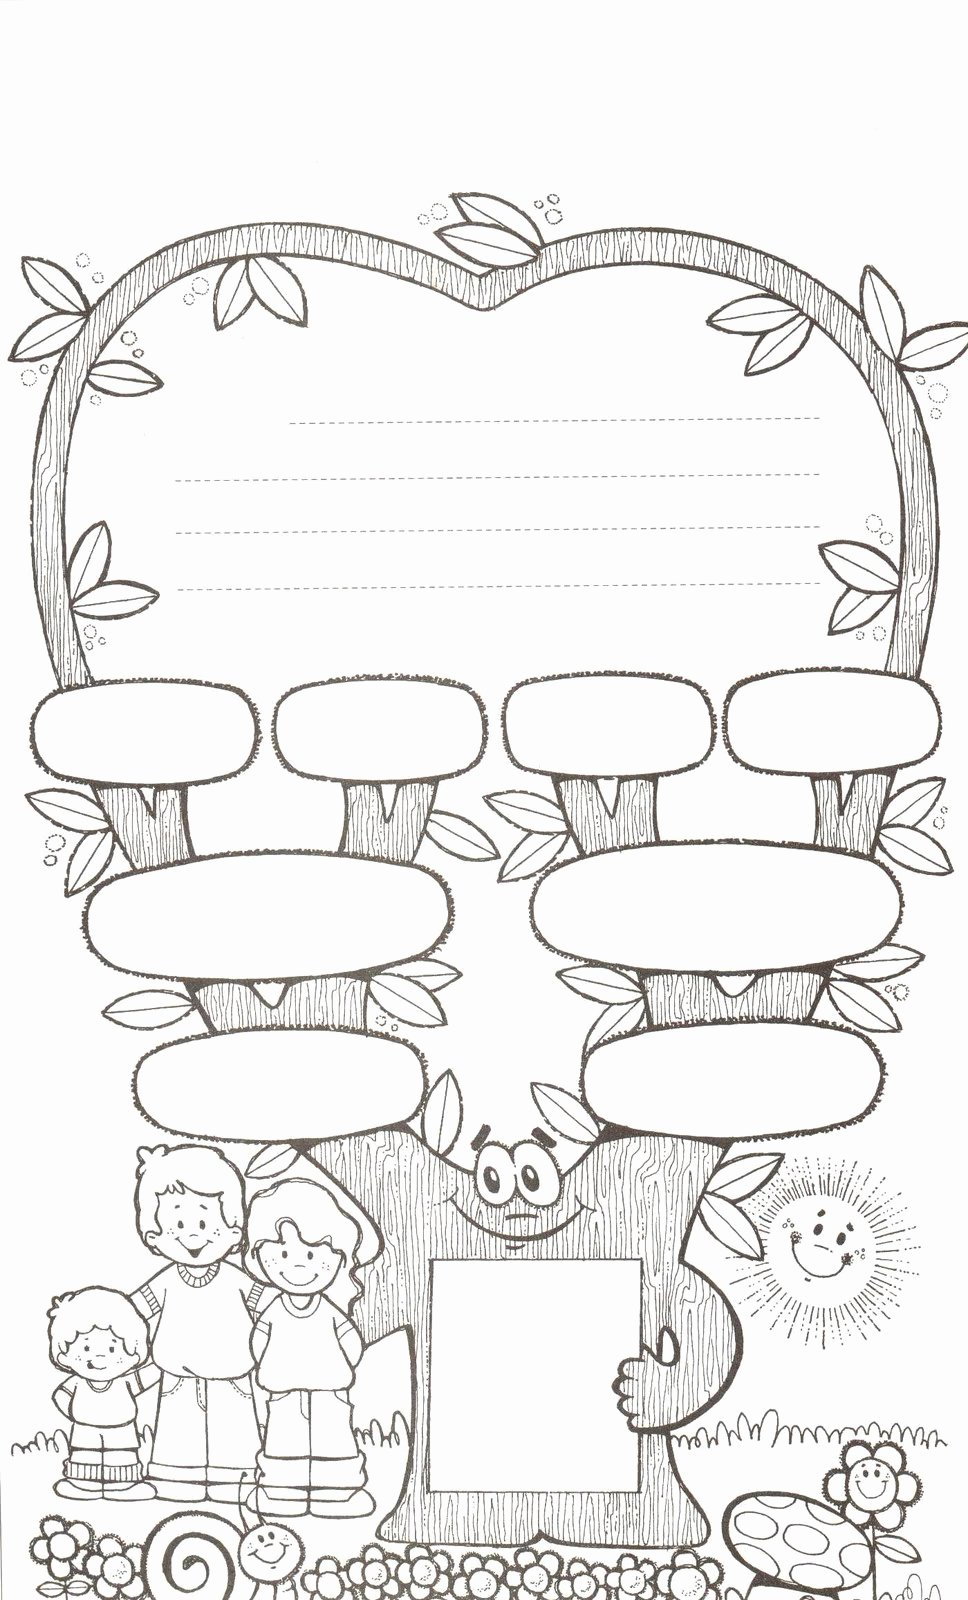 Family Tree Worksheet Printable Awesome 1000 Images About Family Printables On Pinterest